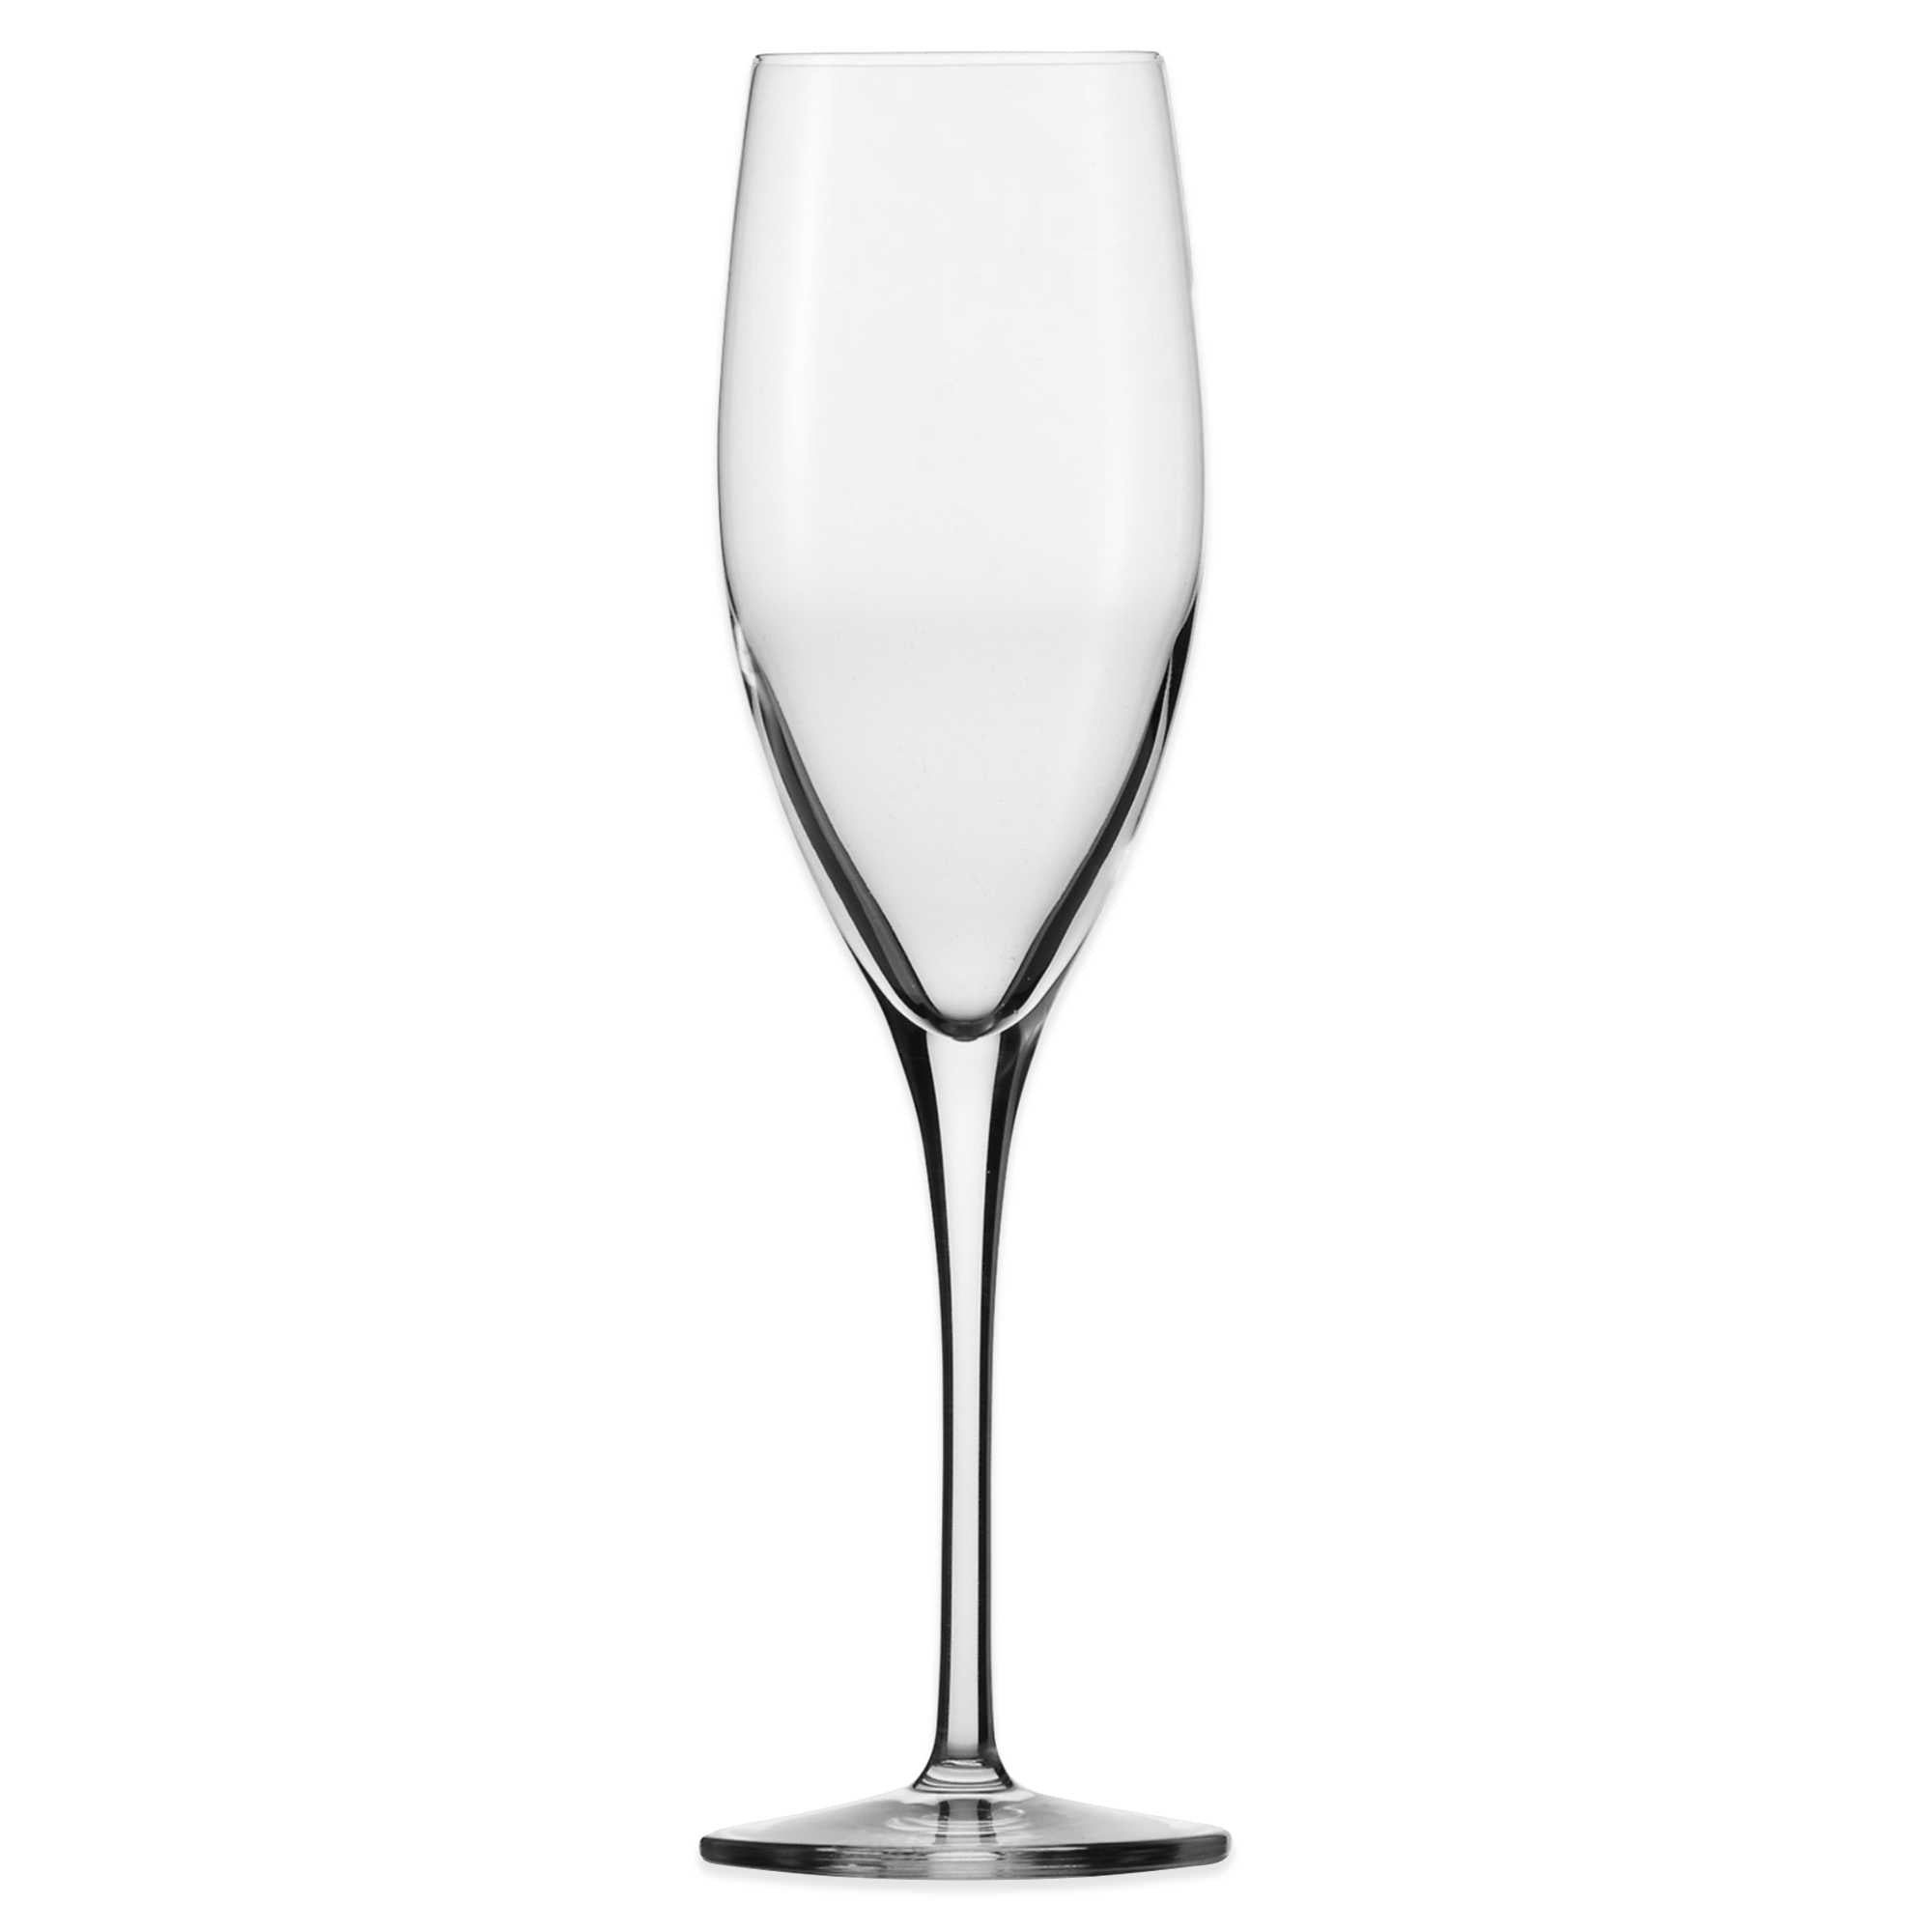 Eisch Superior Sensis Plus Champagne Glasses (Set of 2)